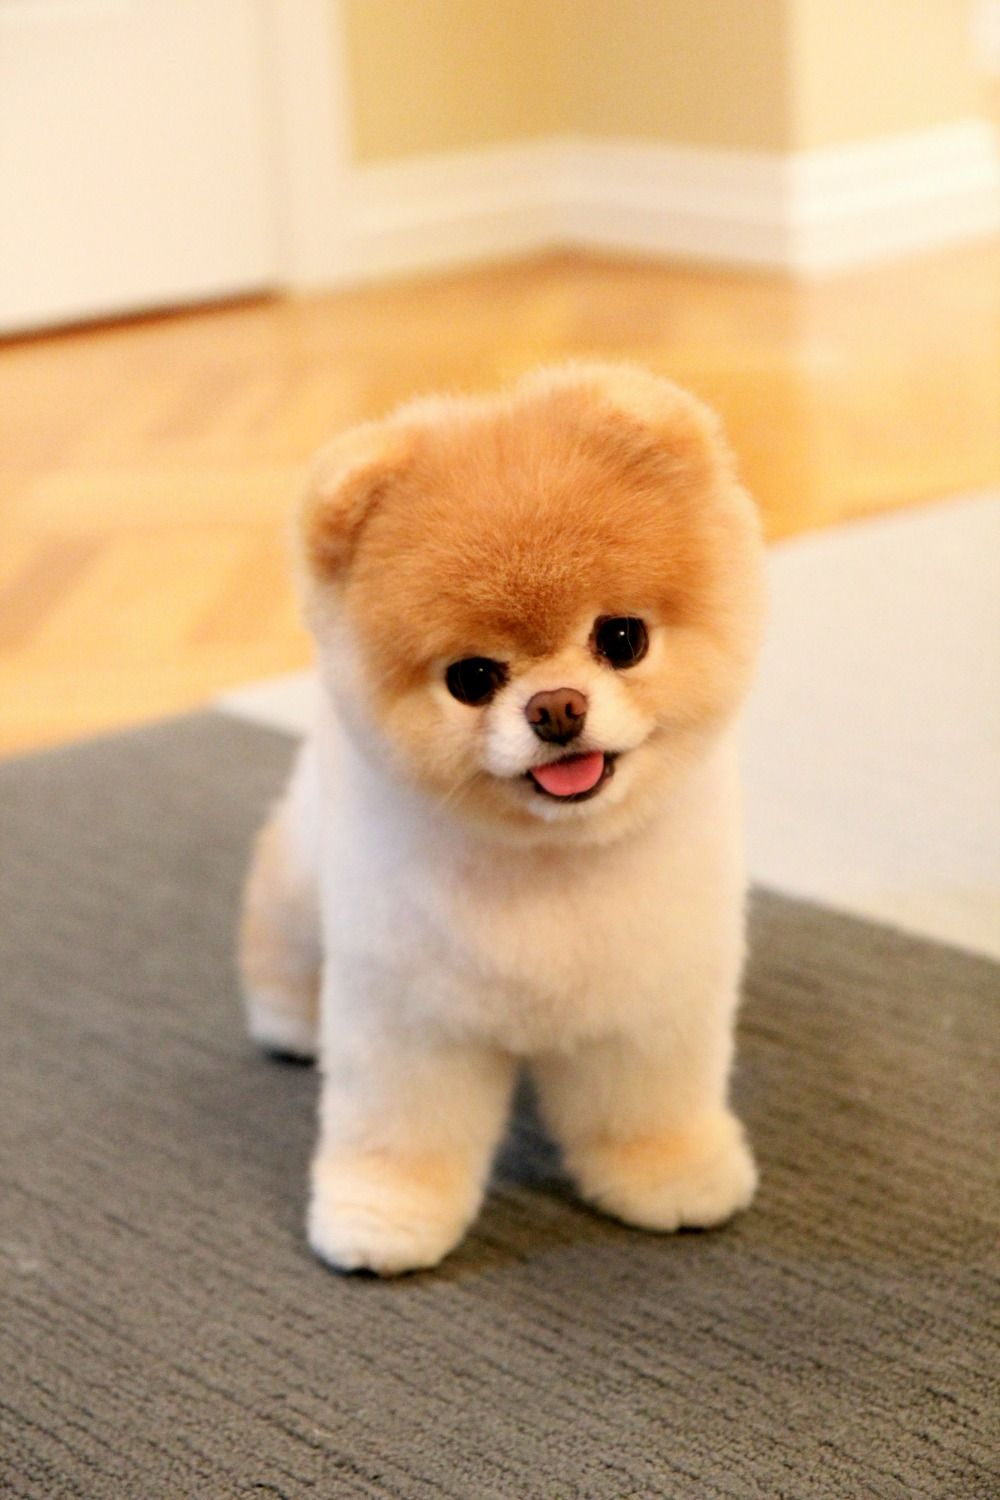 Fantastic Pomeranian Canine Adorable Dog - 996736ef40f8bce87365efda0b8abc52  Trends_455342  .jpg